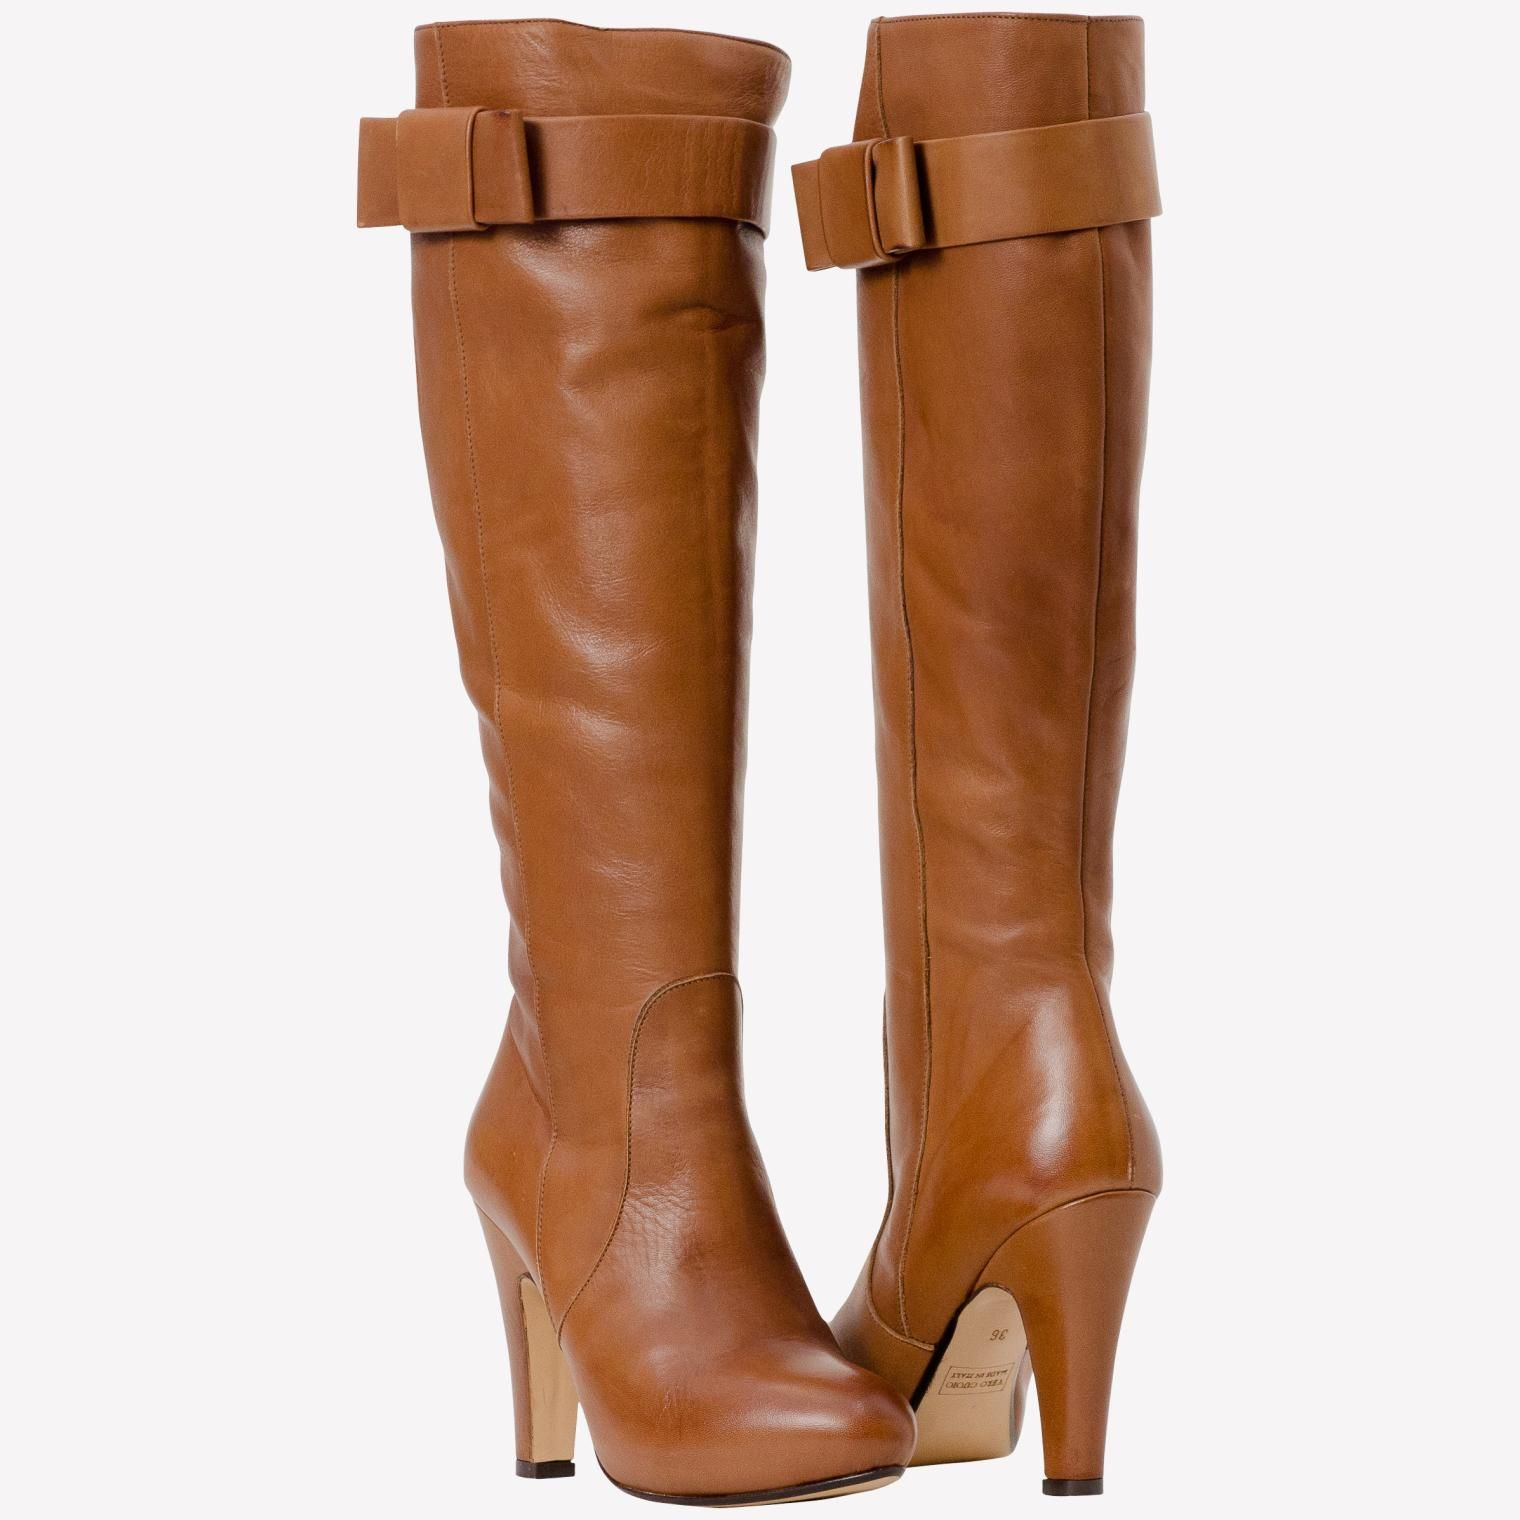 tall tan boots with heels for women | Marion Beige Tan Tall Leather Boots |  Paolo